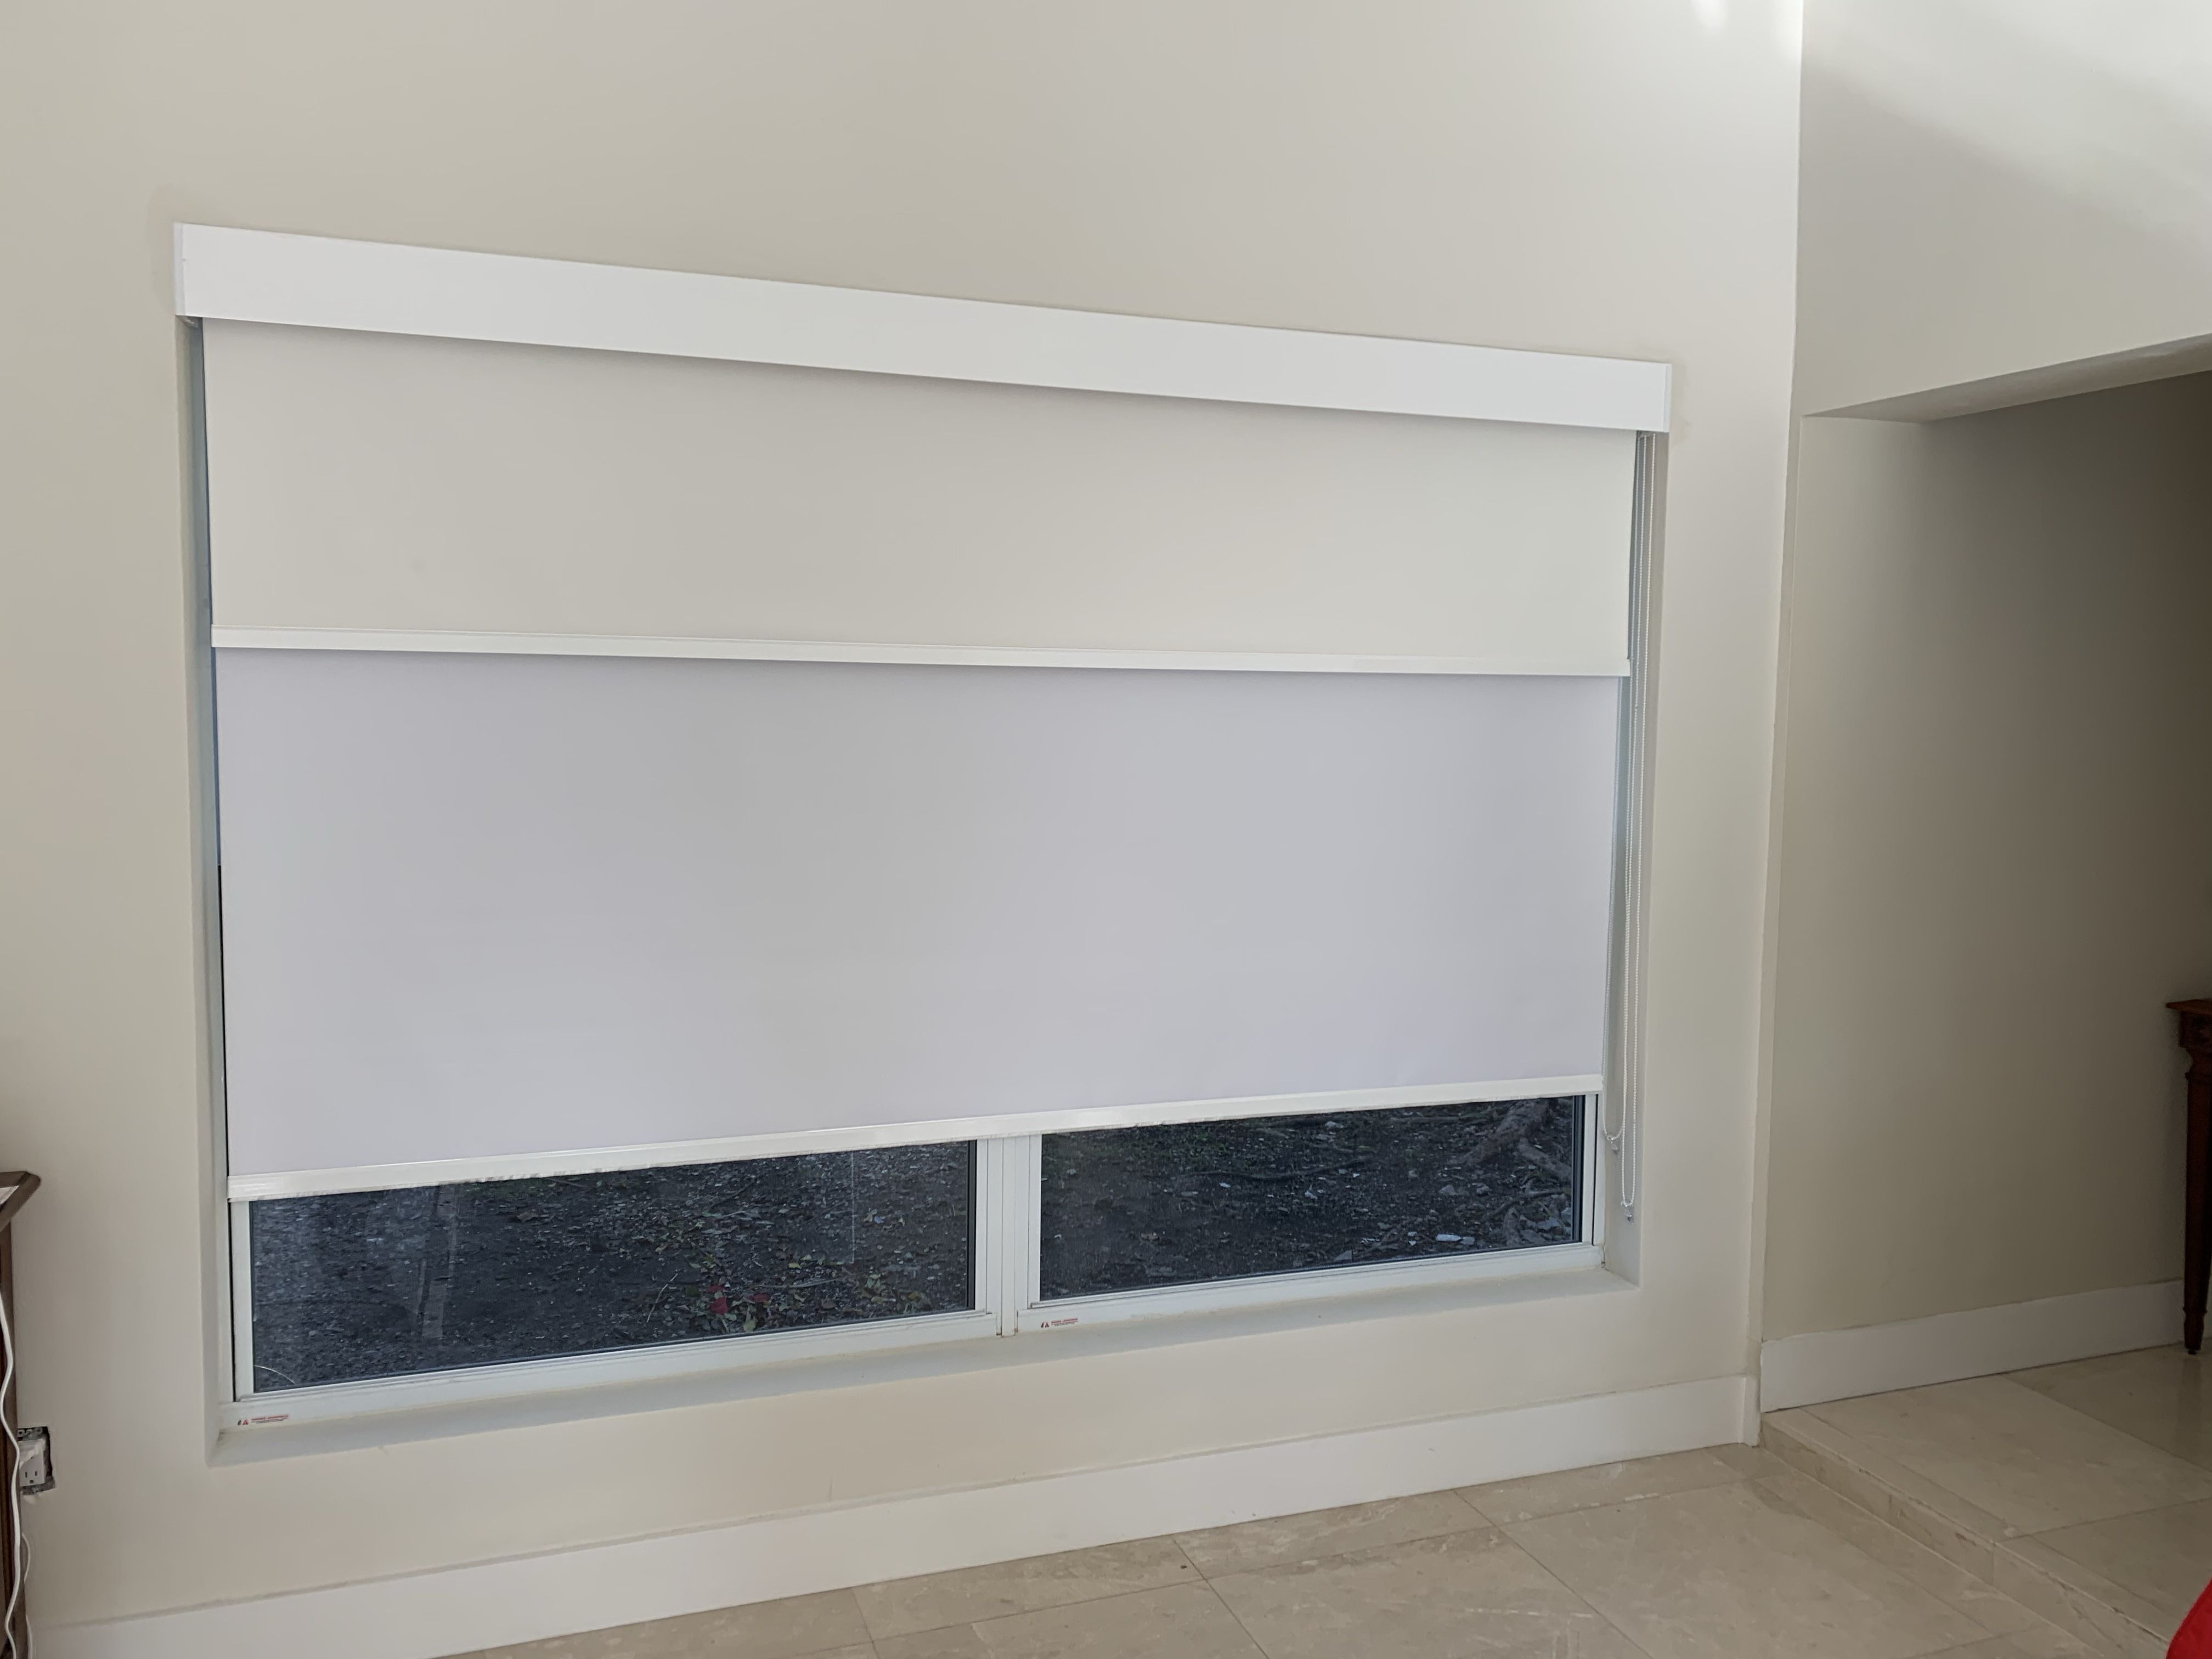 Dual Fabric Roller Shades Privacy Shades Fabric Roller Shades Elite Decor